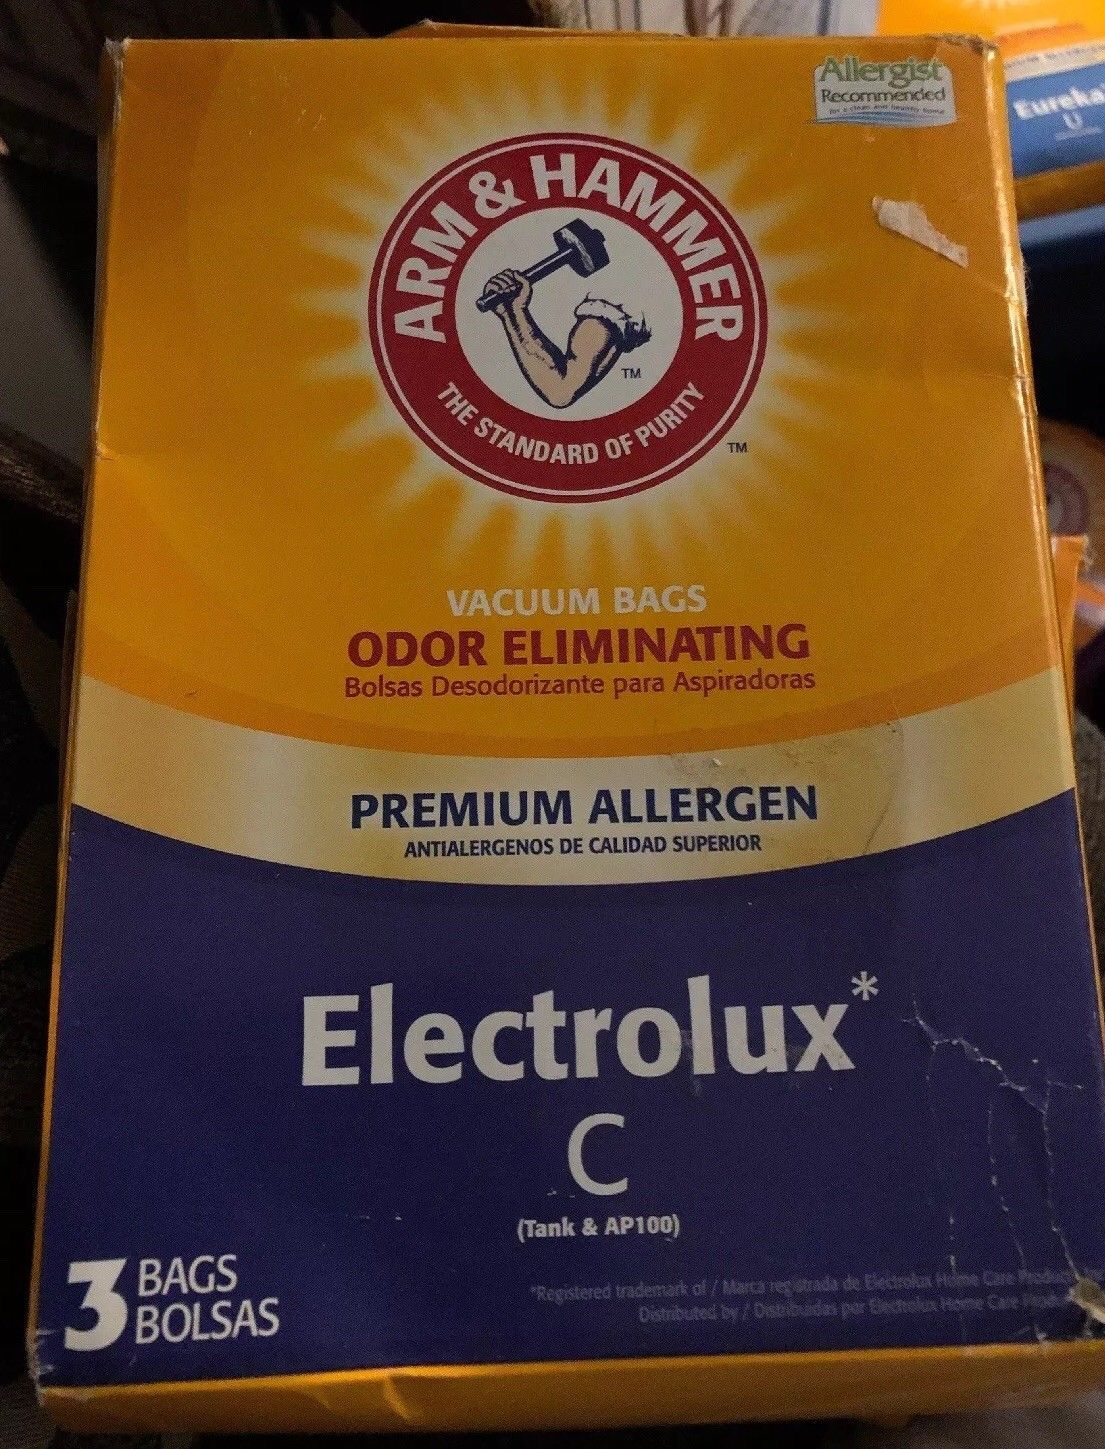 Arm & Hammer Odor Eliminating Vacuum Cleaner Bags Electrolux C Premium Allergen image 1